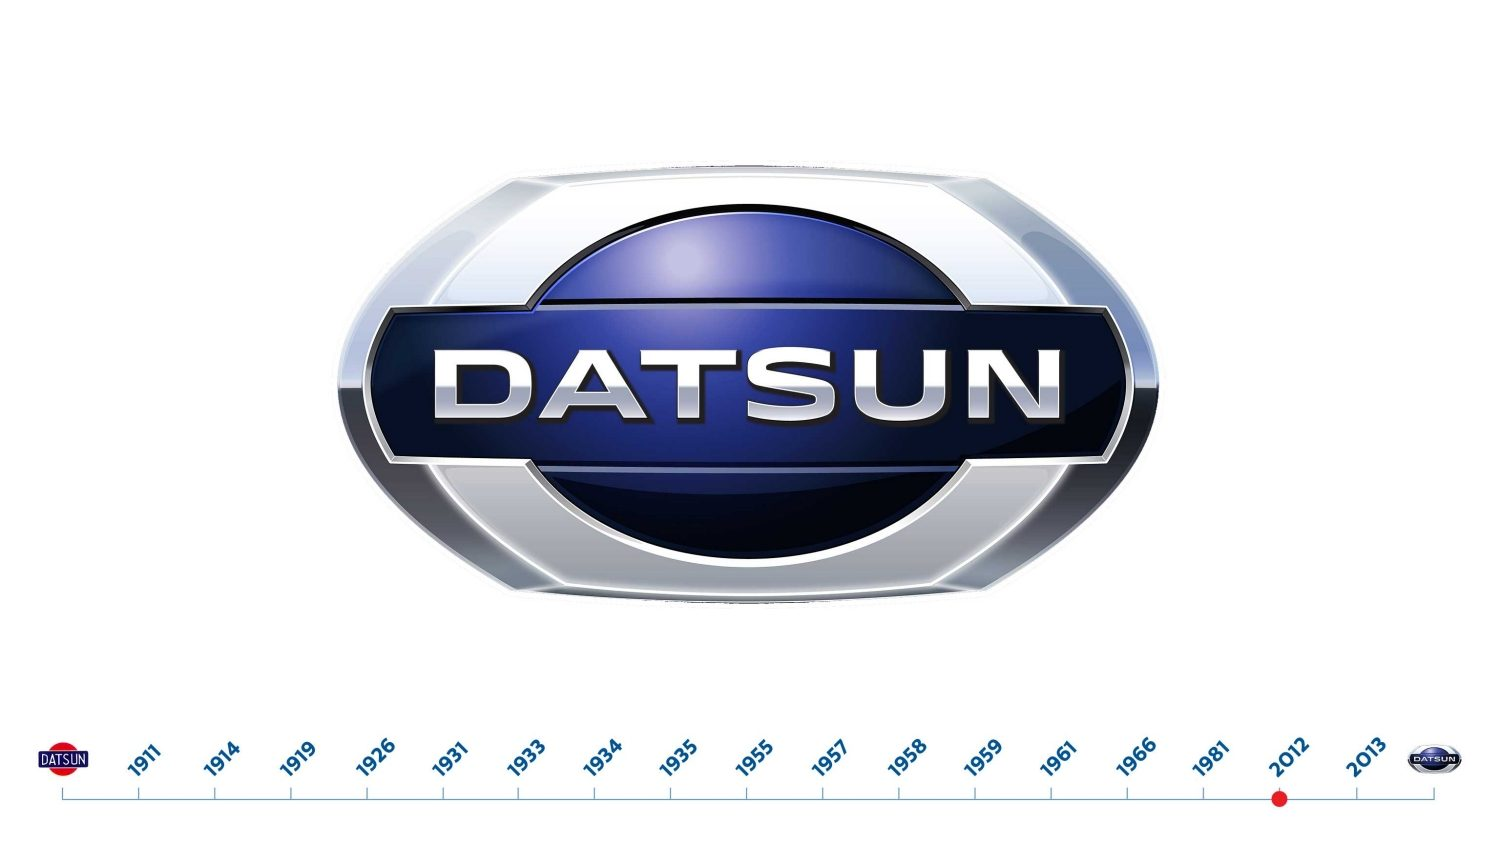 Nissan announces in March the return of the Datsun brand in 2012